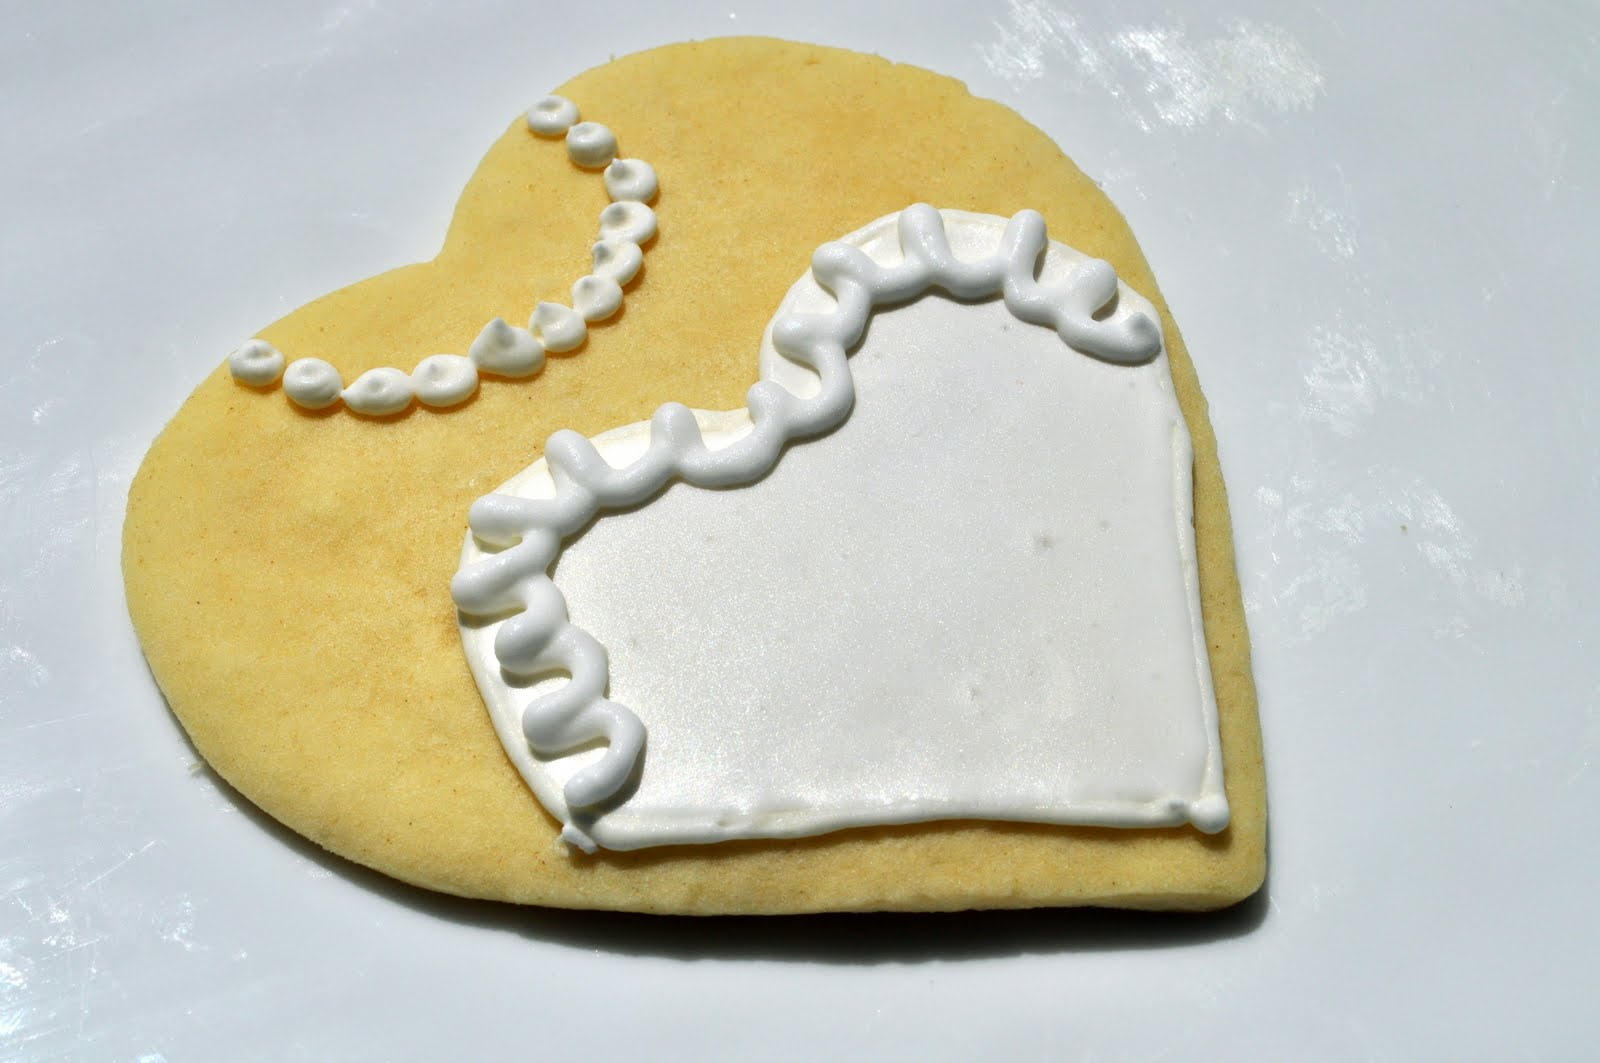 Our Italian Kitchen: Hearts of Love Sugar Cookies